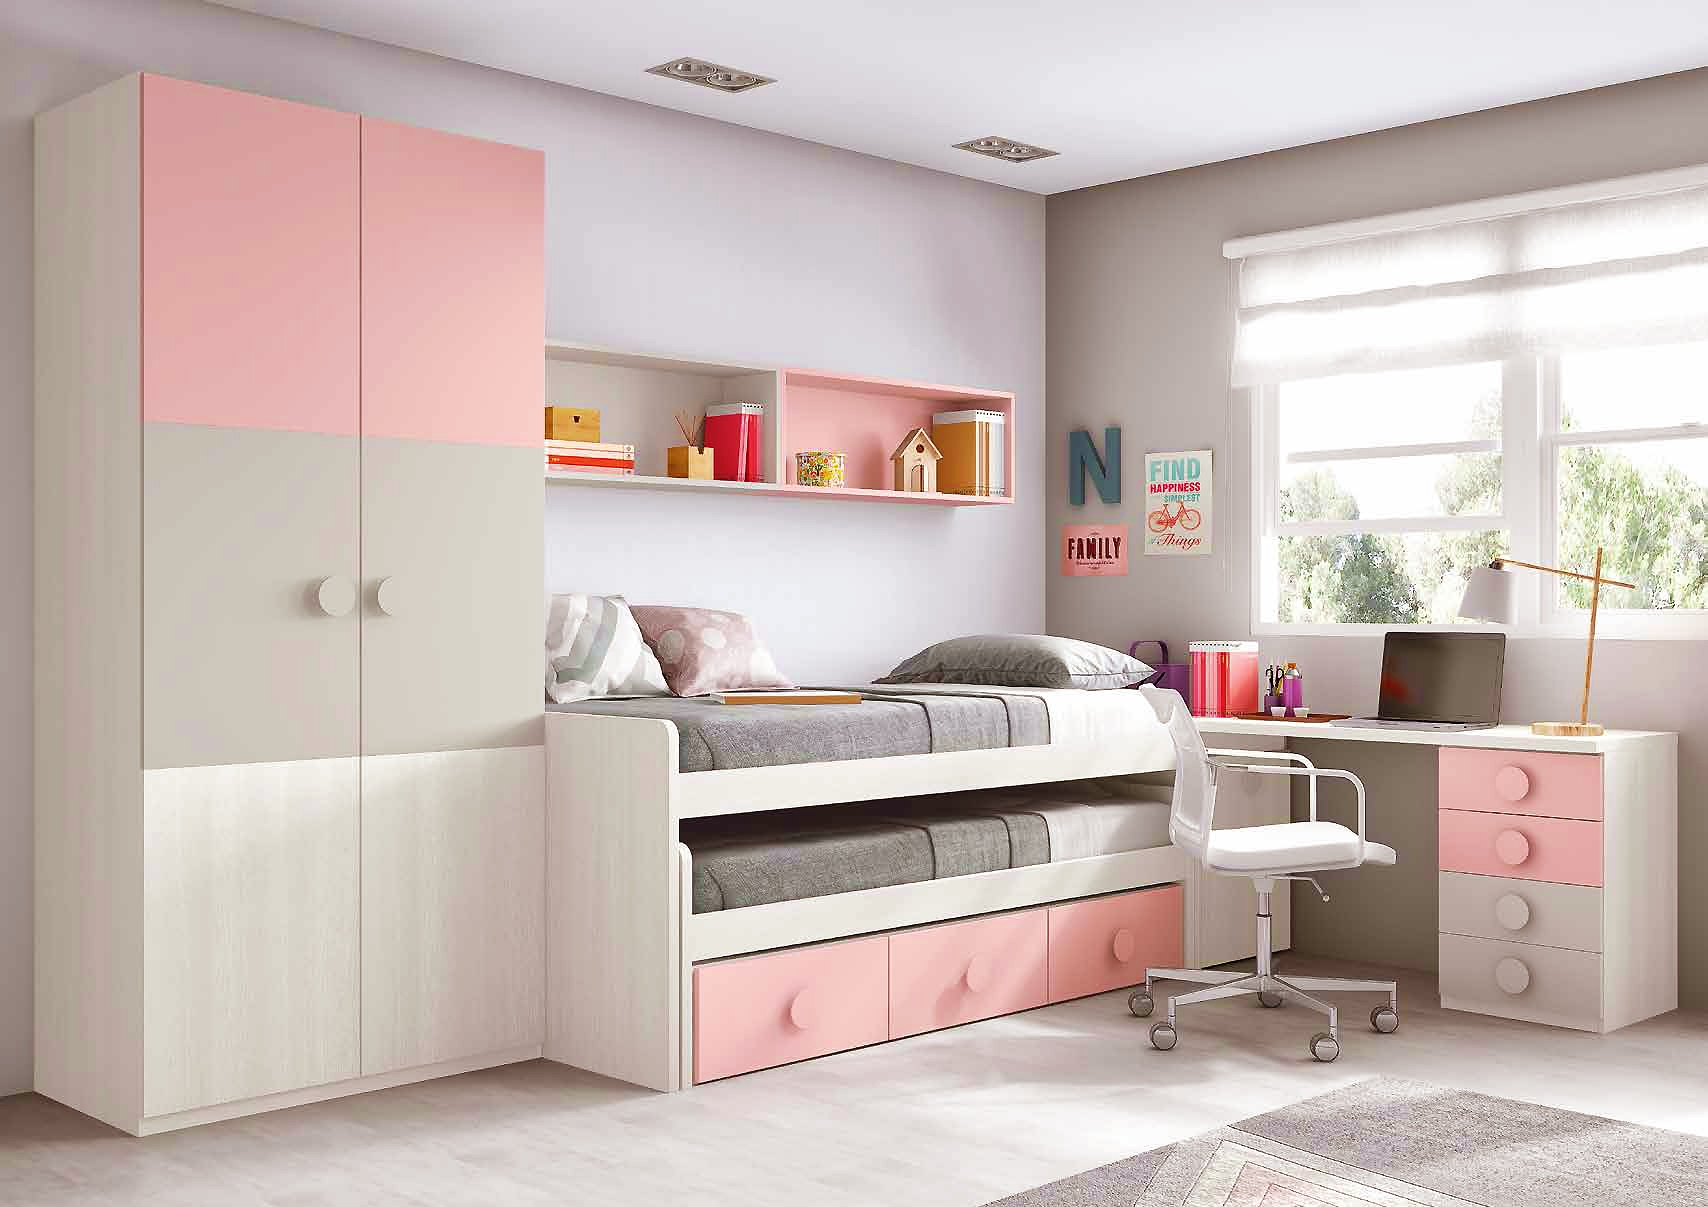 chambre ado fille astucieuse avec son lit gigogne. Black Bedroom Furniture Sets. Home Design Ideas